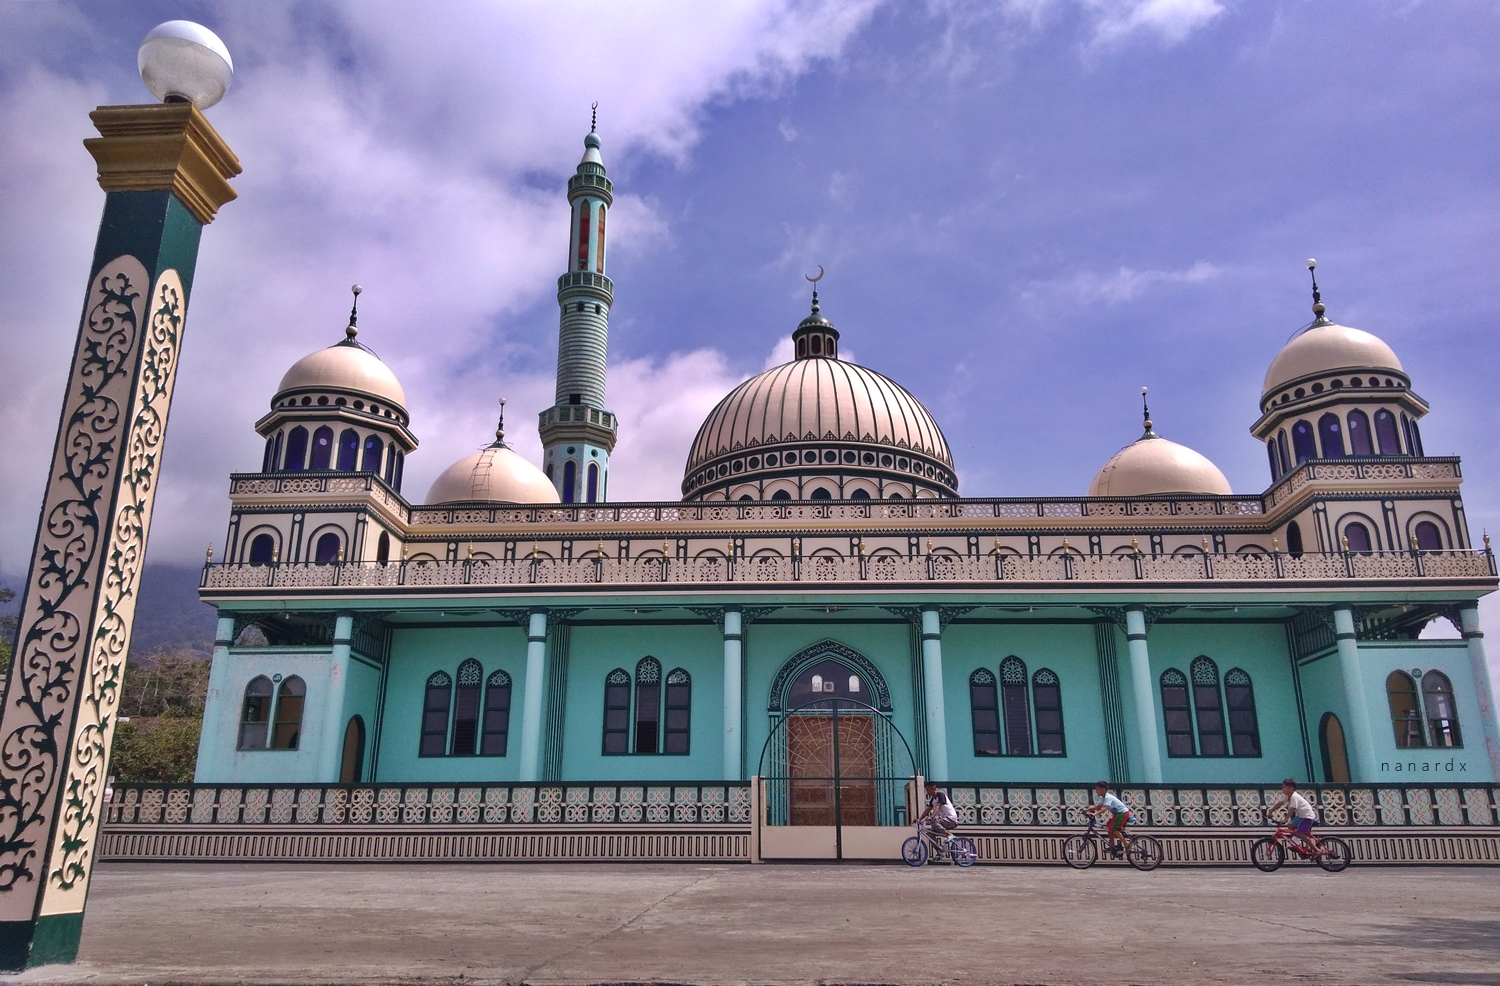 The breathtaking Bacolod Grande Grand Mosque in Lanao del Sur